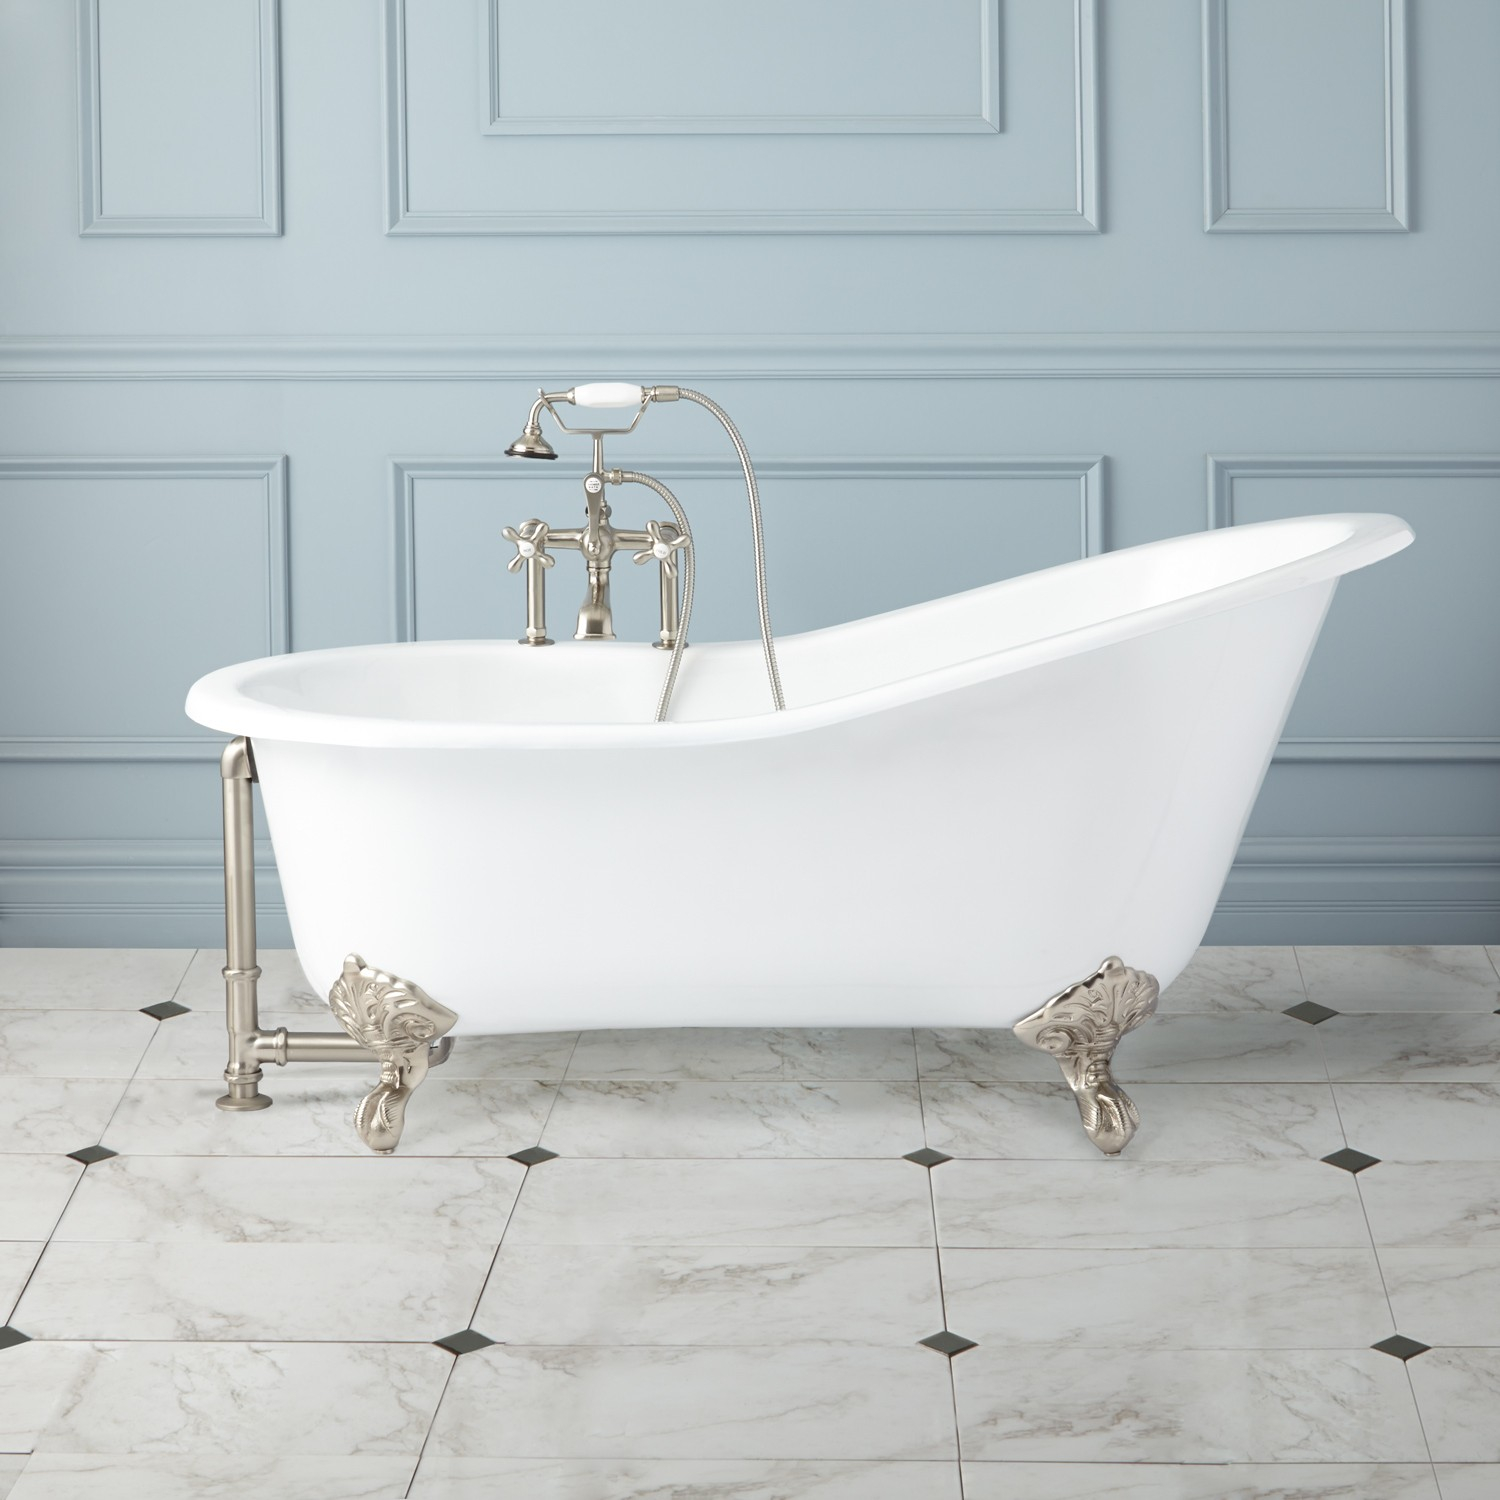 Cast Iron Clawfoot Bathtub Weight • Bathtub Ideas